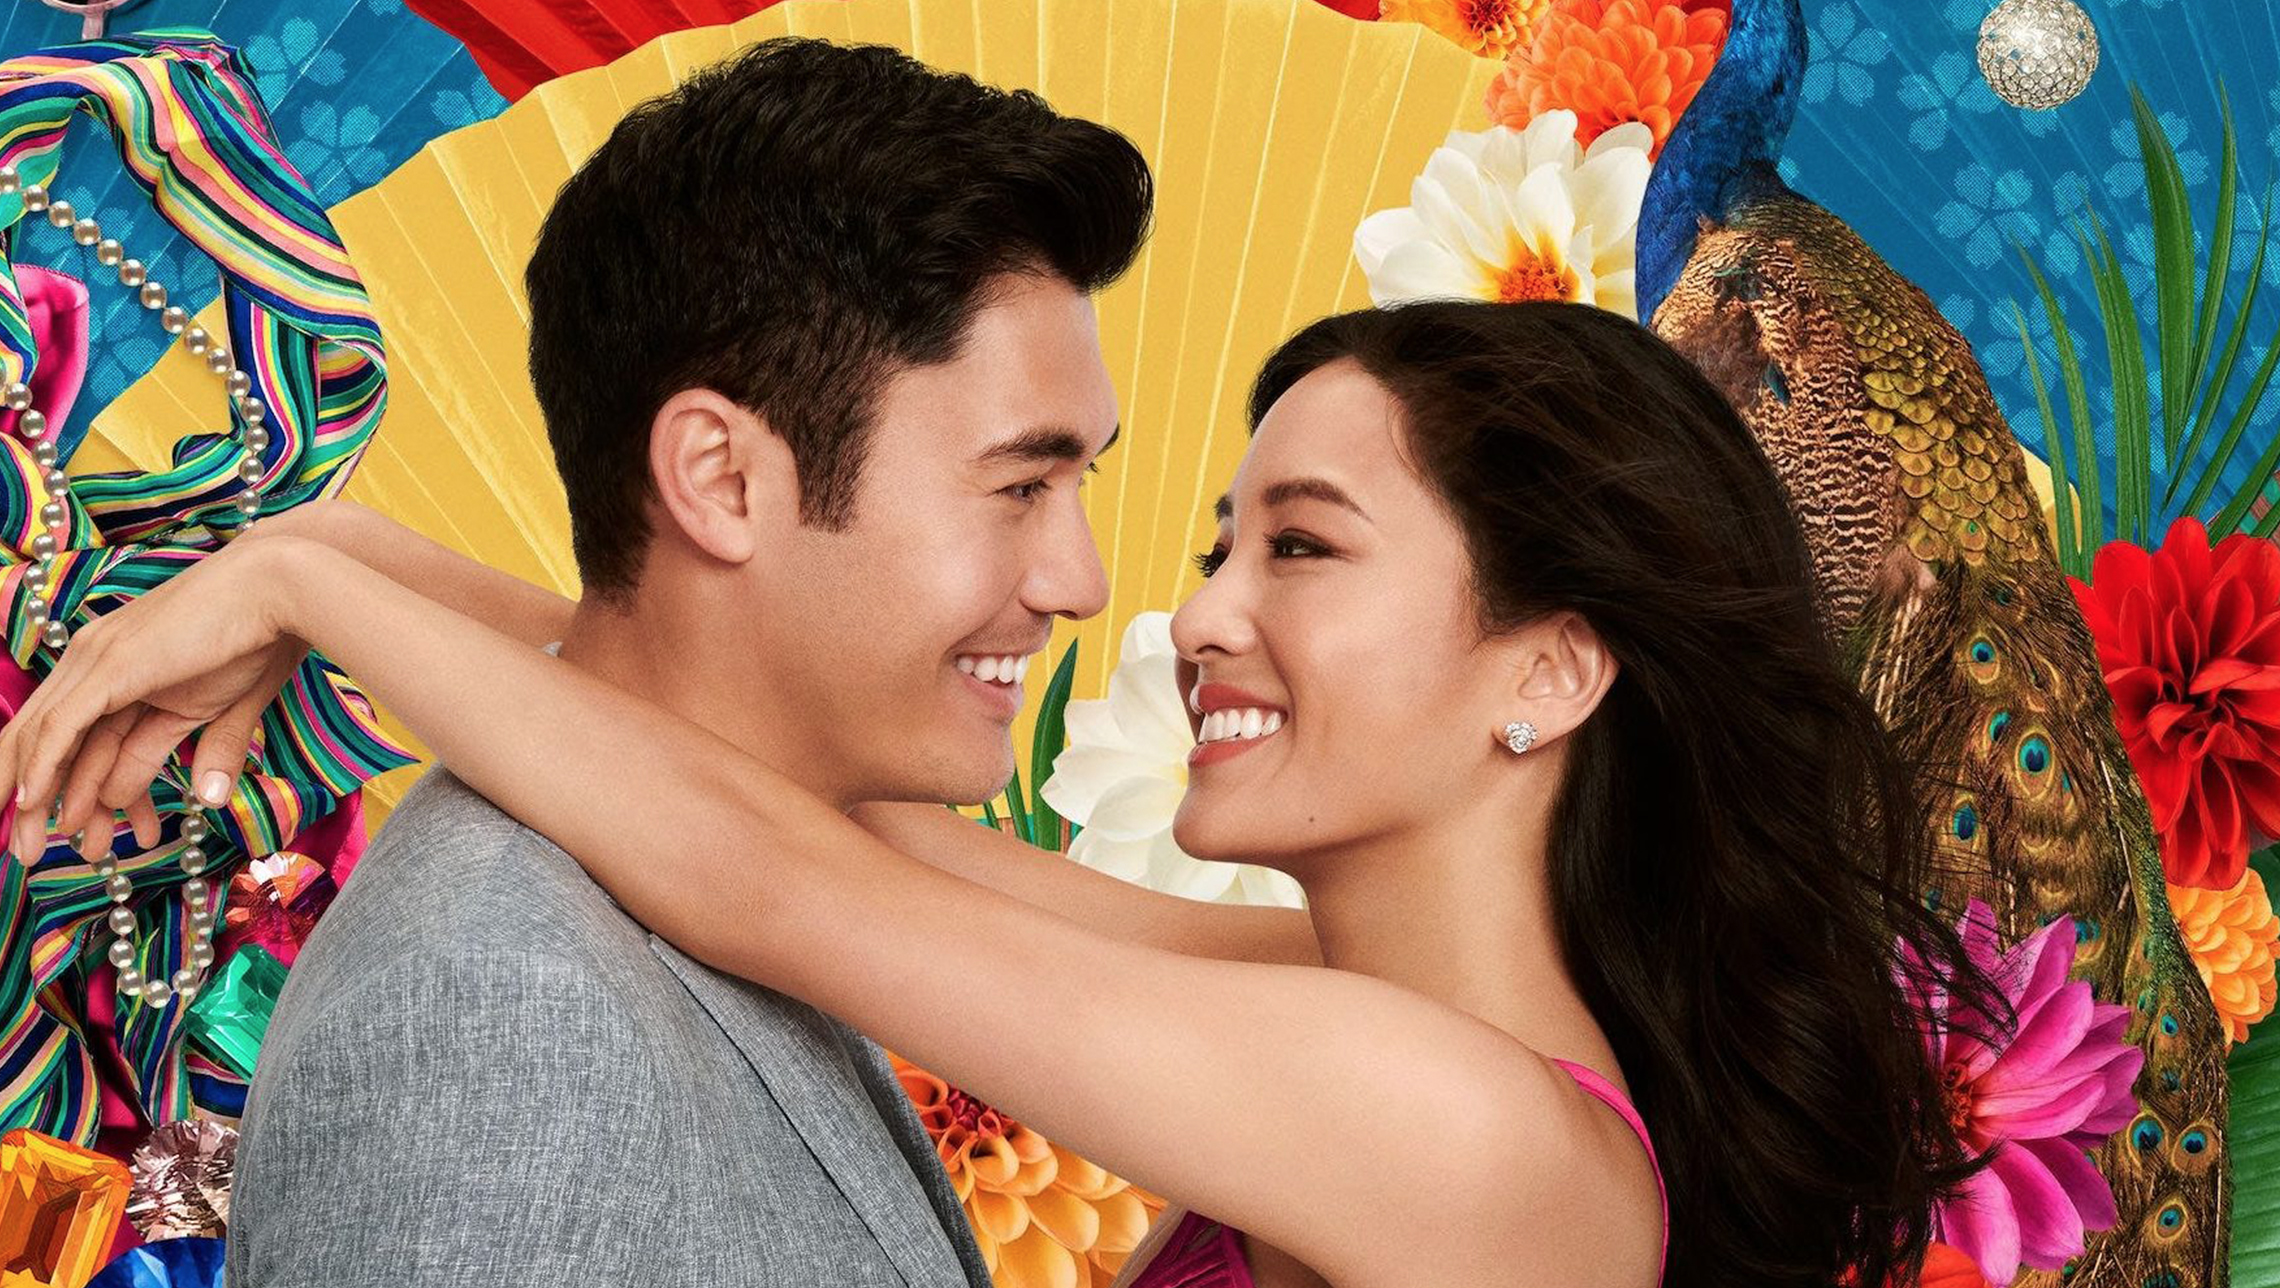 Isnt It Pity Real Problem With Special >> The Real Problem With Crazy Rich Asians Junk Asia